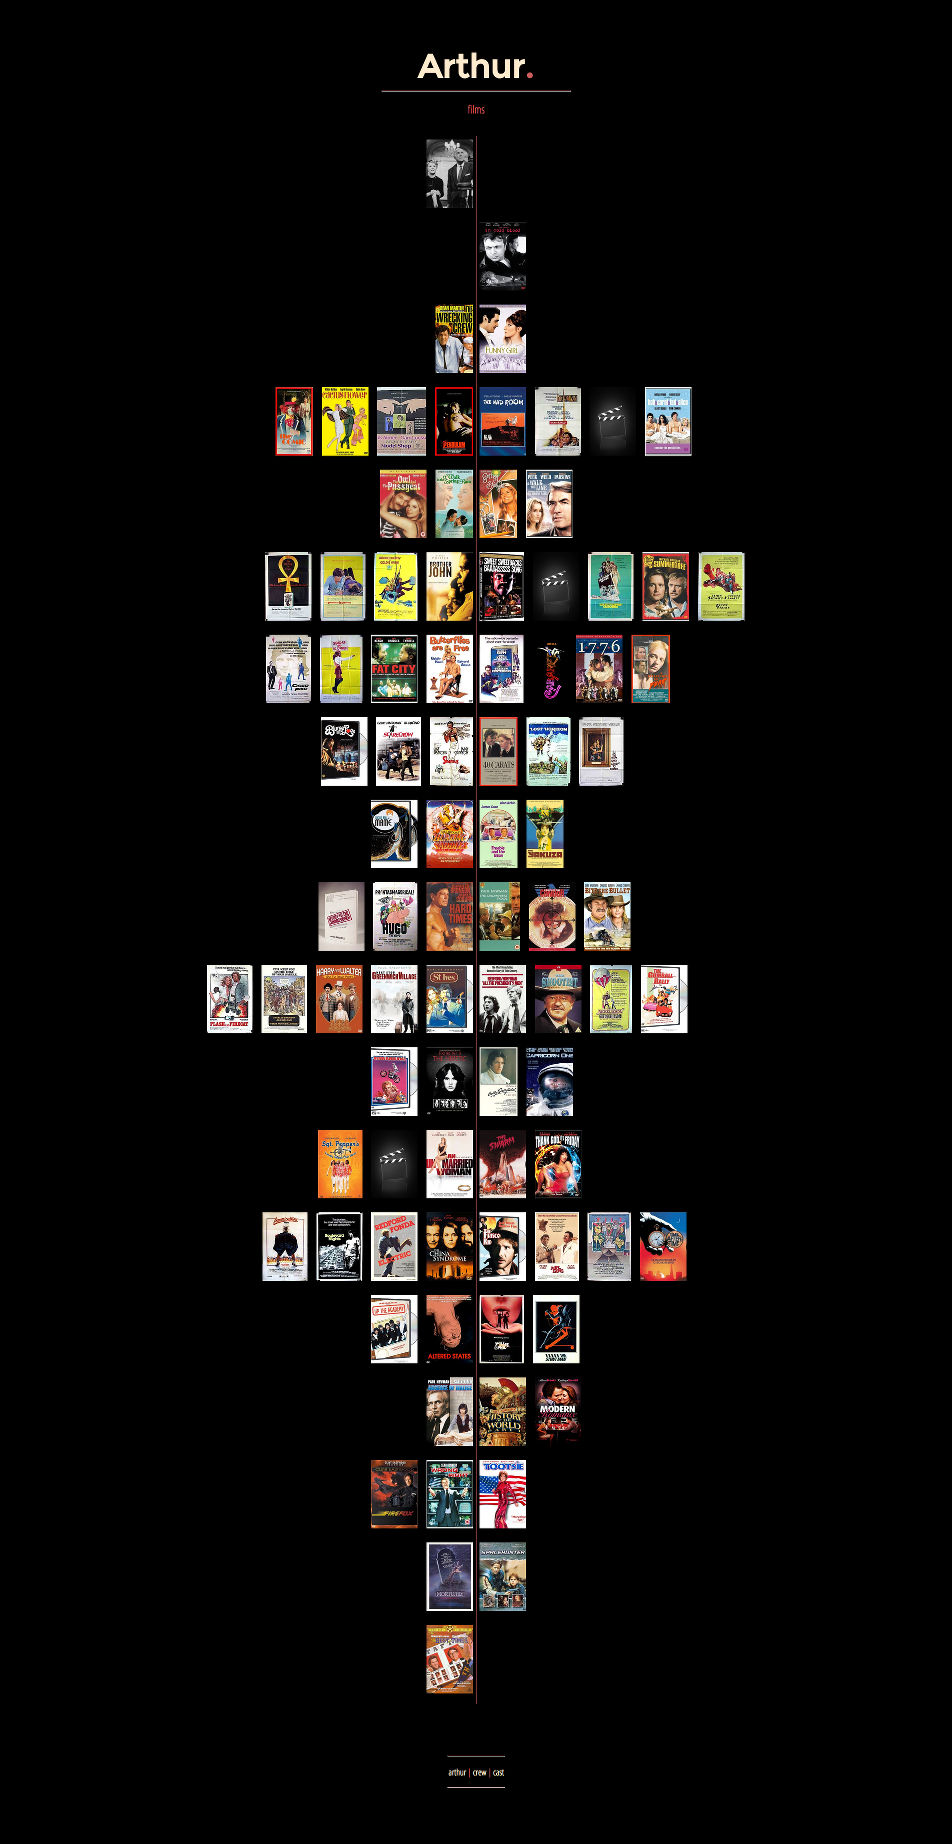 vertical timeline of some of the movies of Arthur Piatadosi